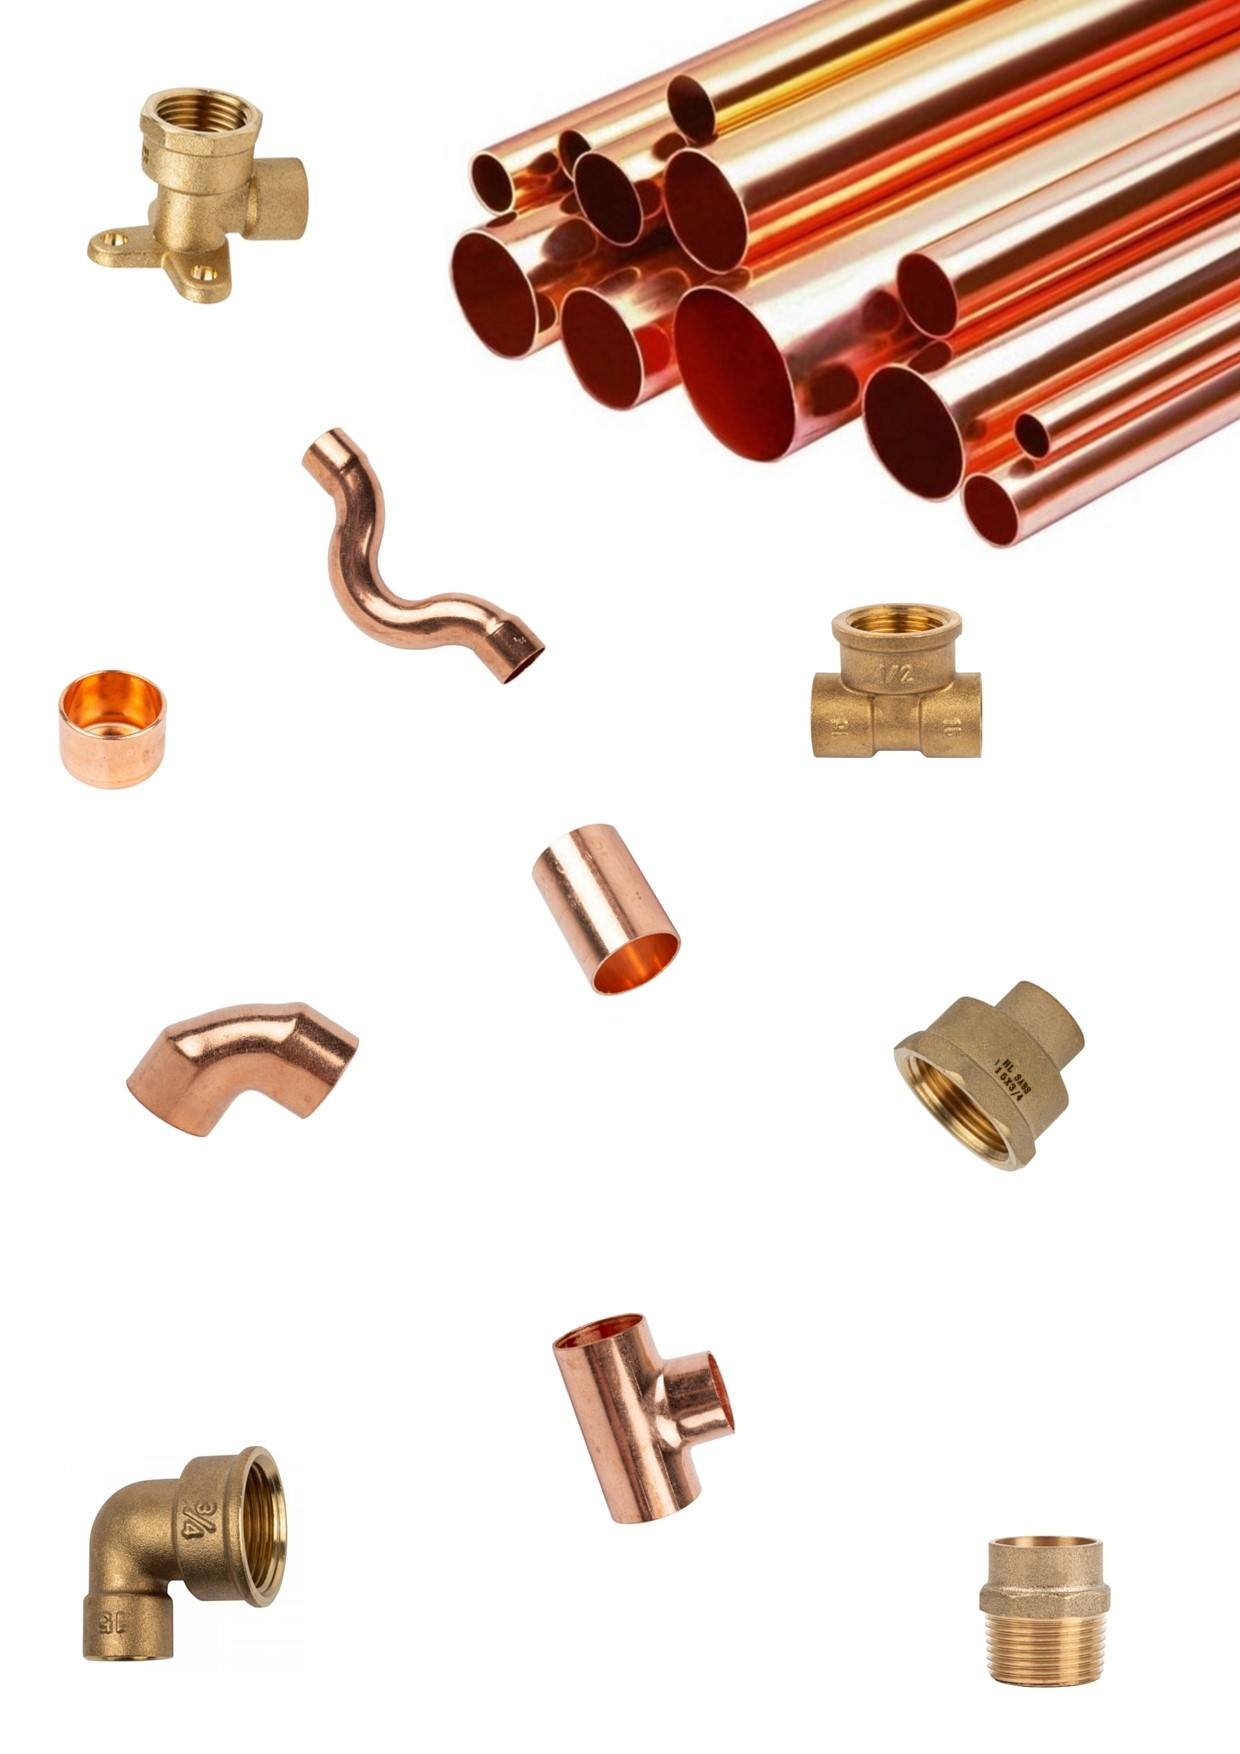 irrigation-suppliers-copper